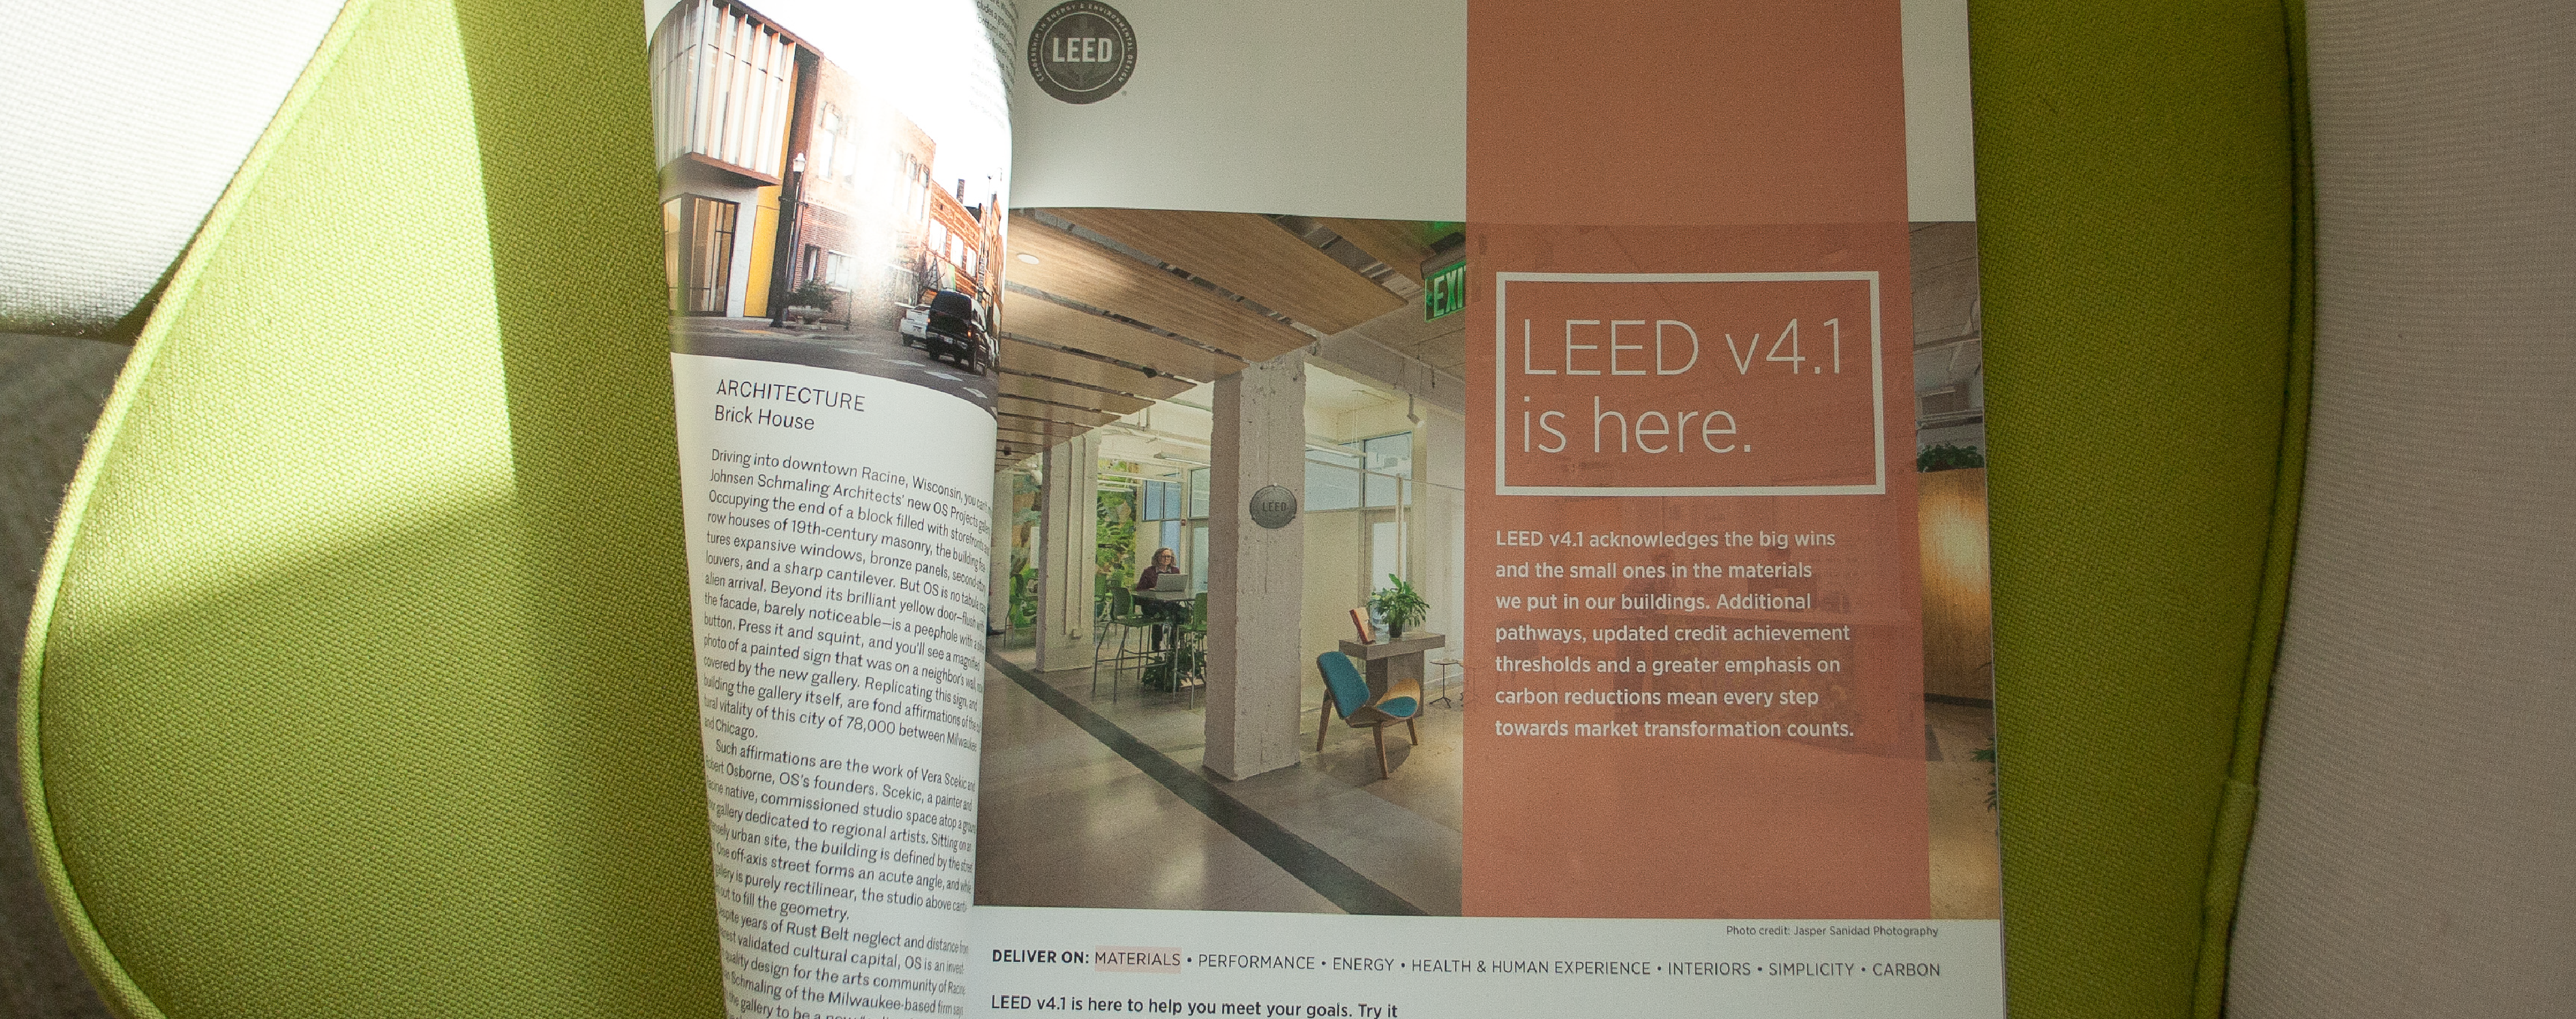 USGBC's new LEED v4.1 advertising campaign